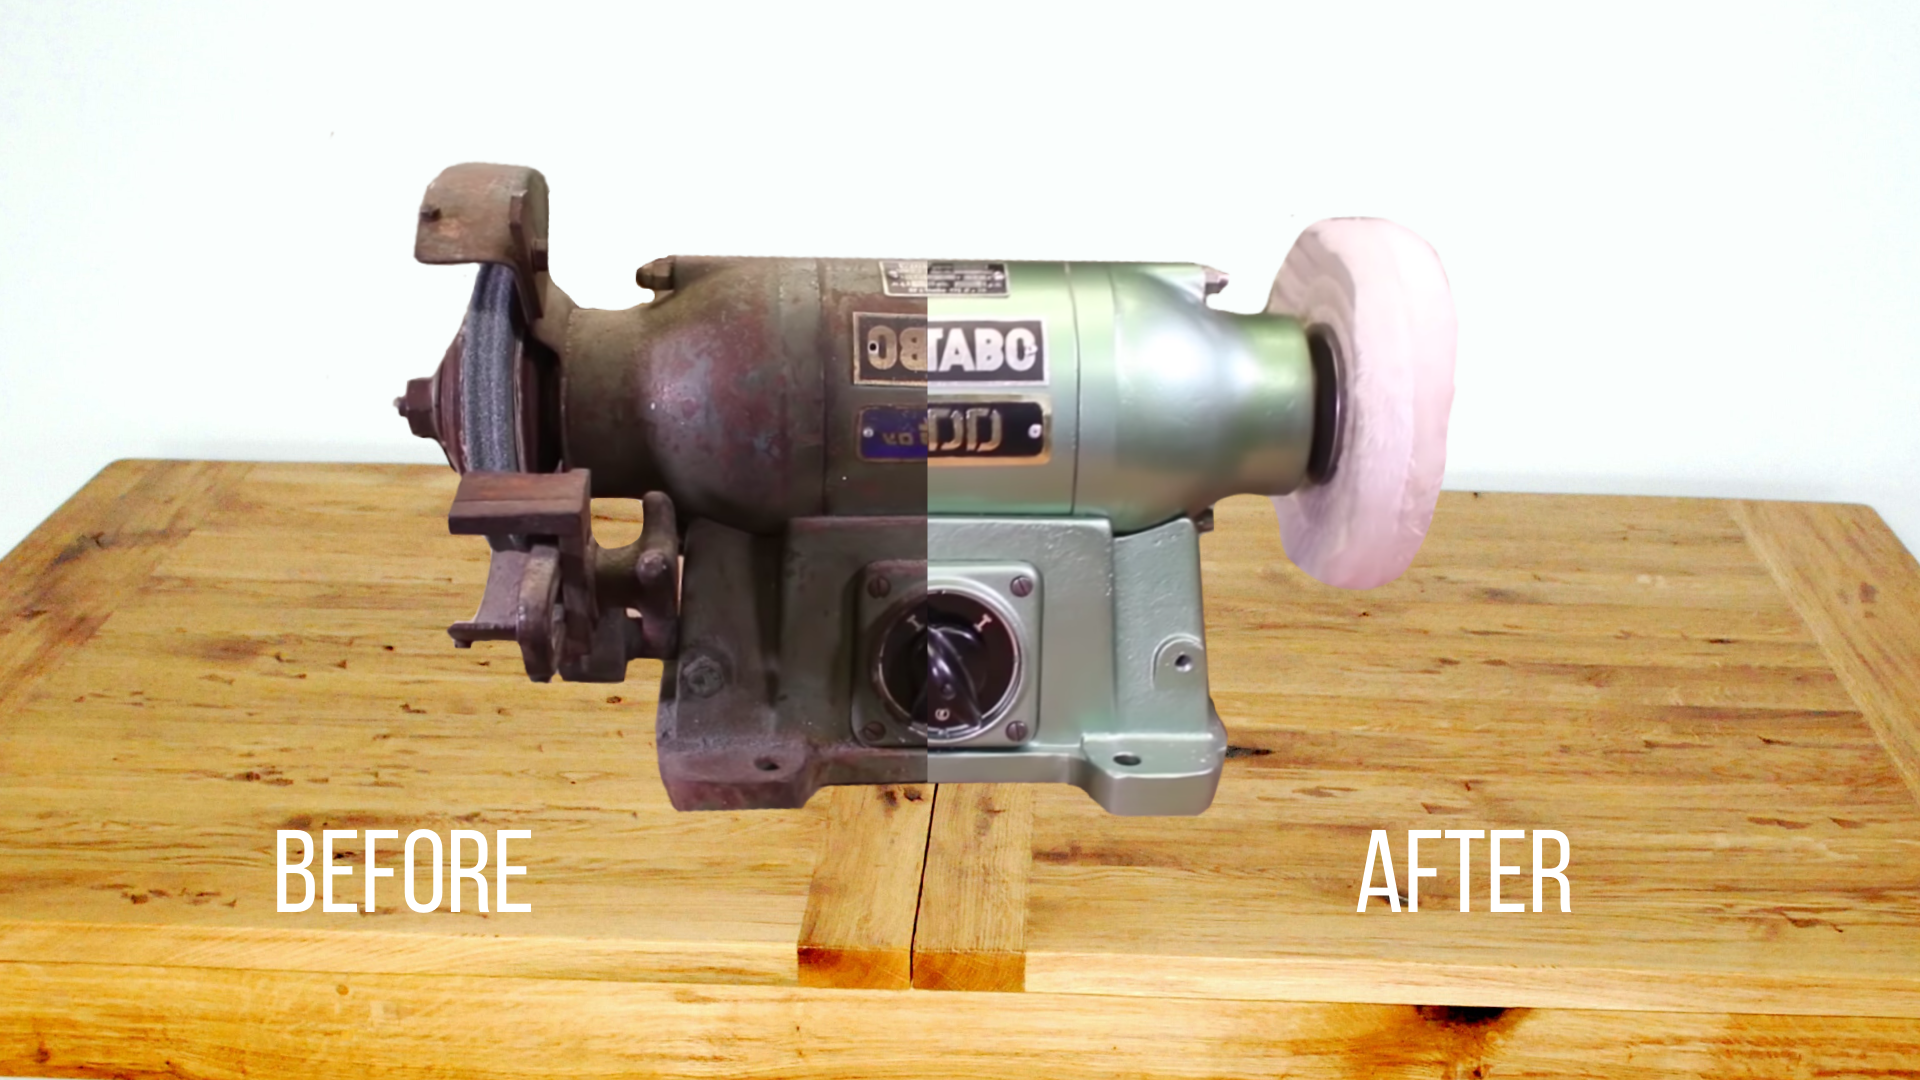 1 Minute Porn Videos youtube's hardware restoration videos can fix you, too